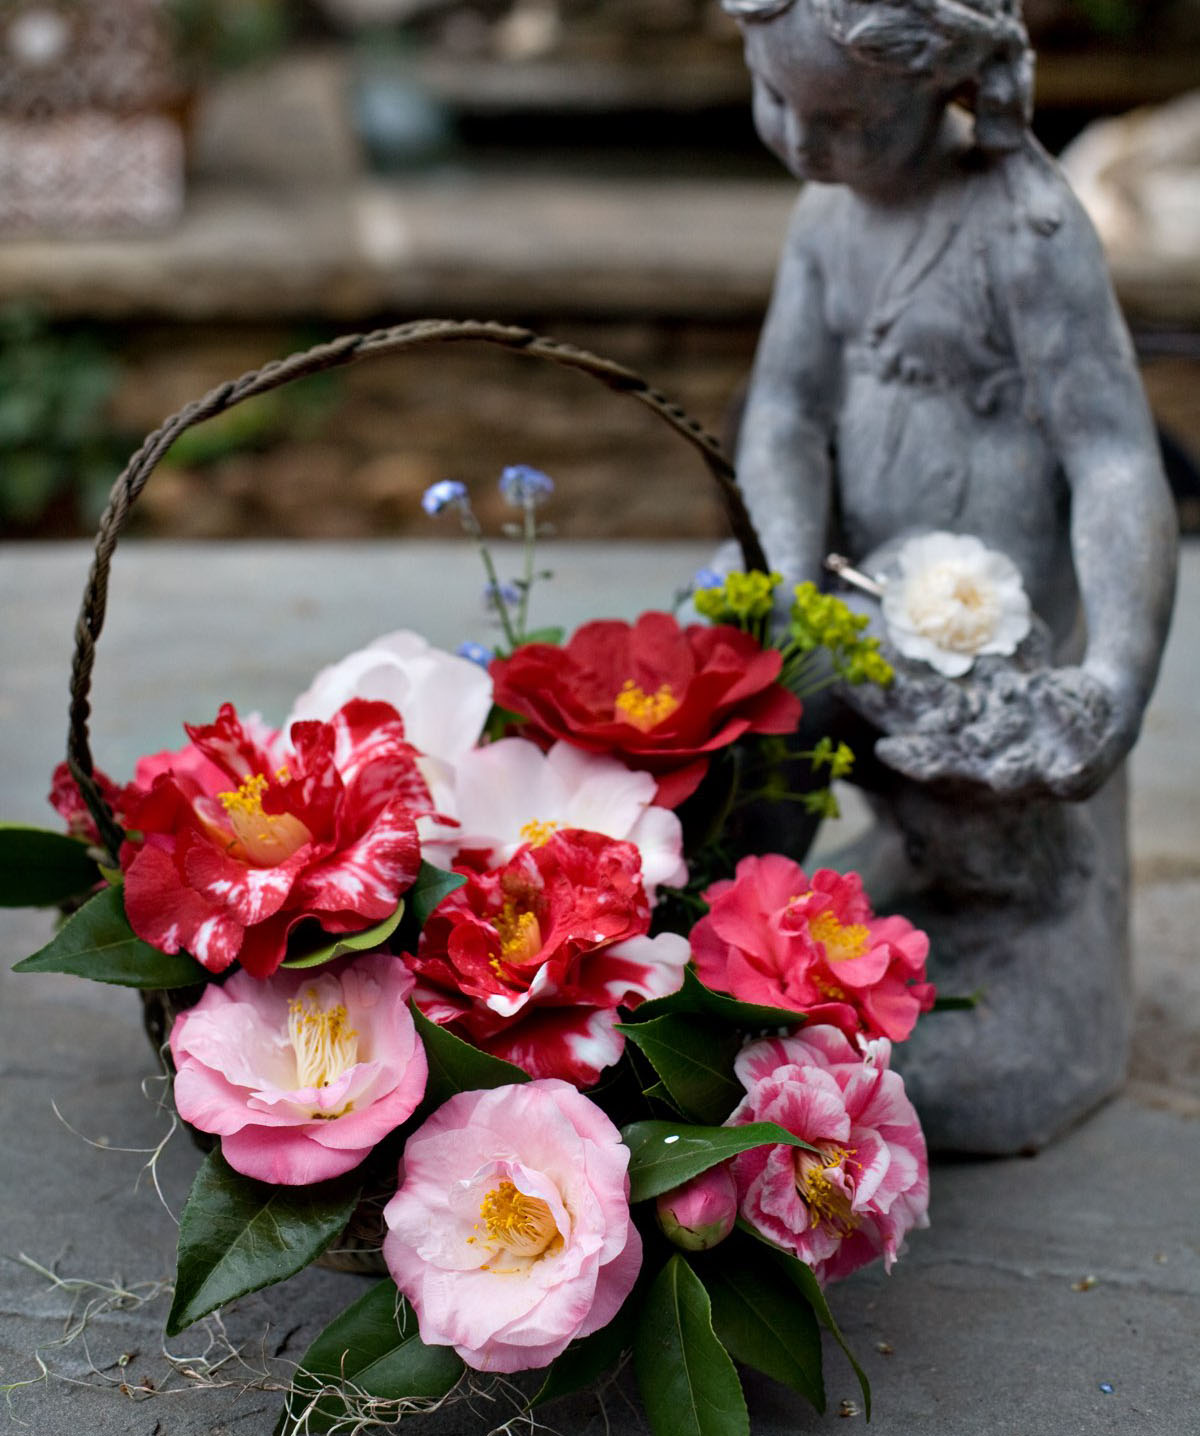 a basket arrangement of camellia varieties ranging from pale to dark pink, with solid and variegated petals